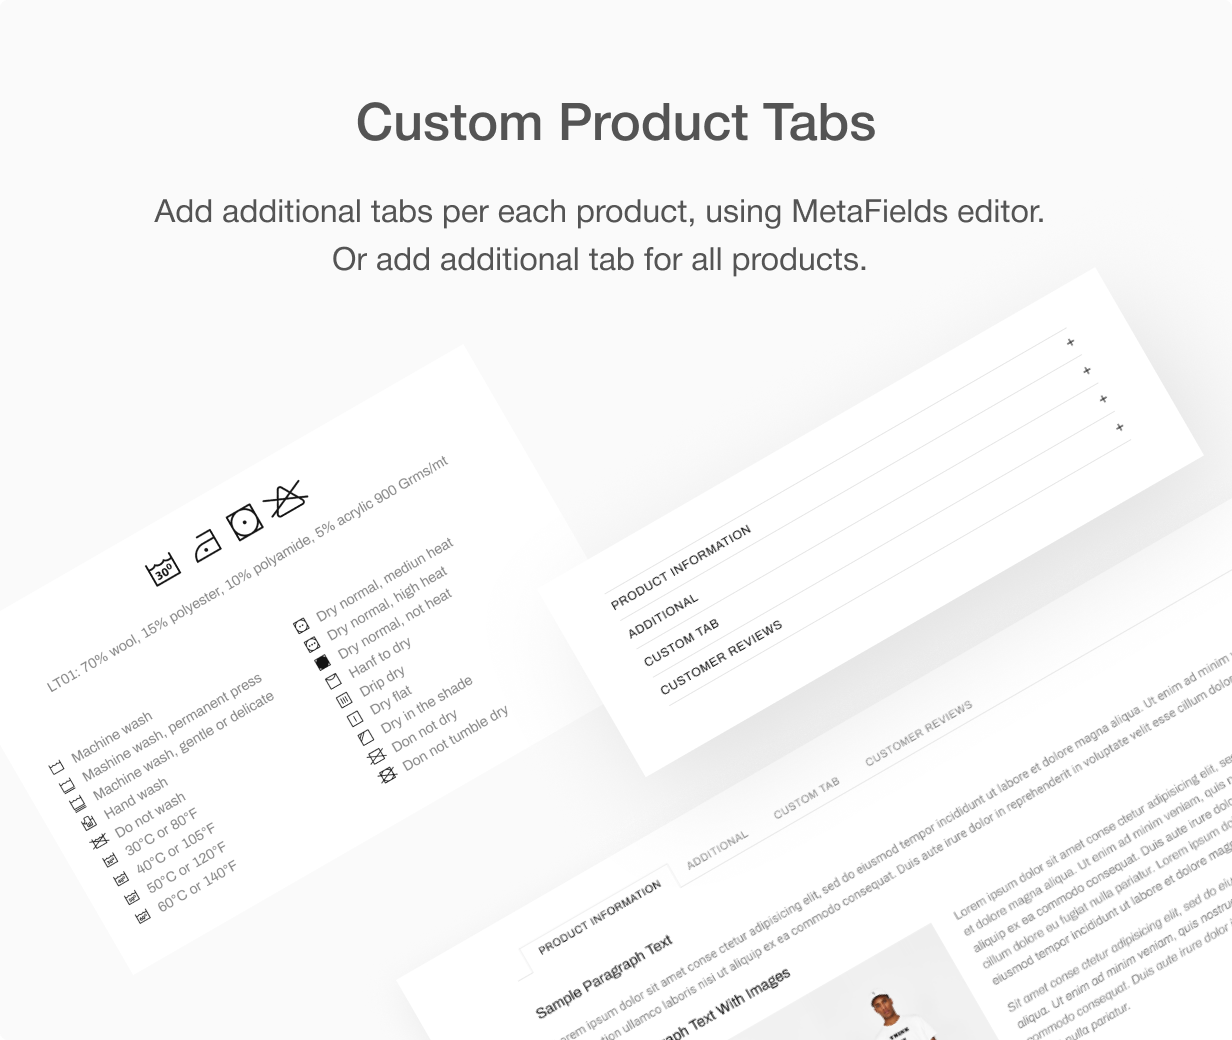 Custom product tabs at Shella Shopify theme